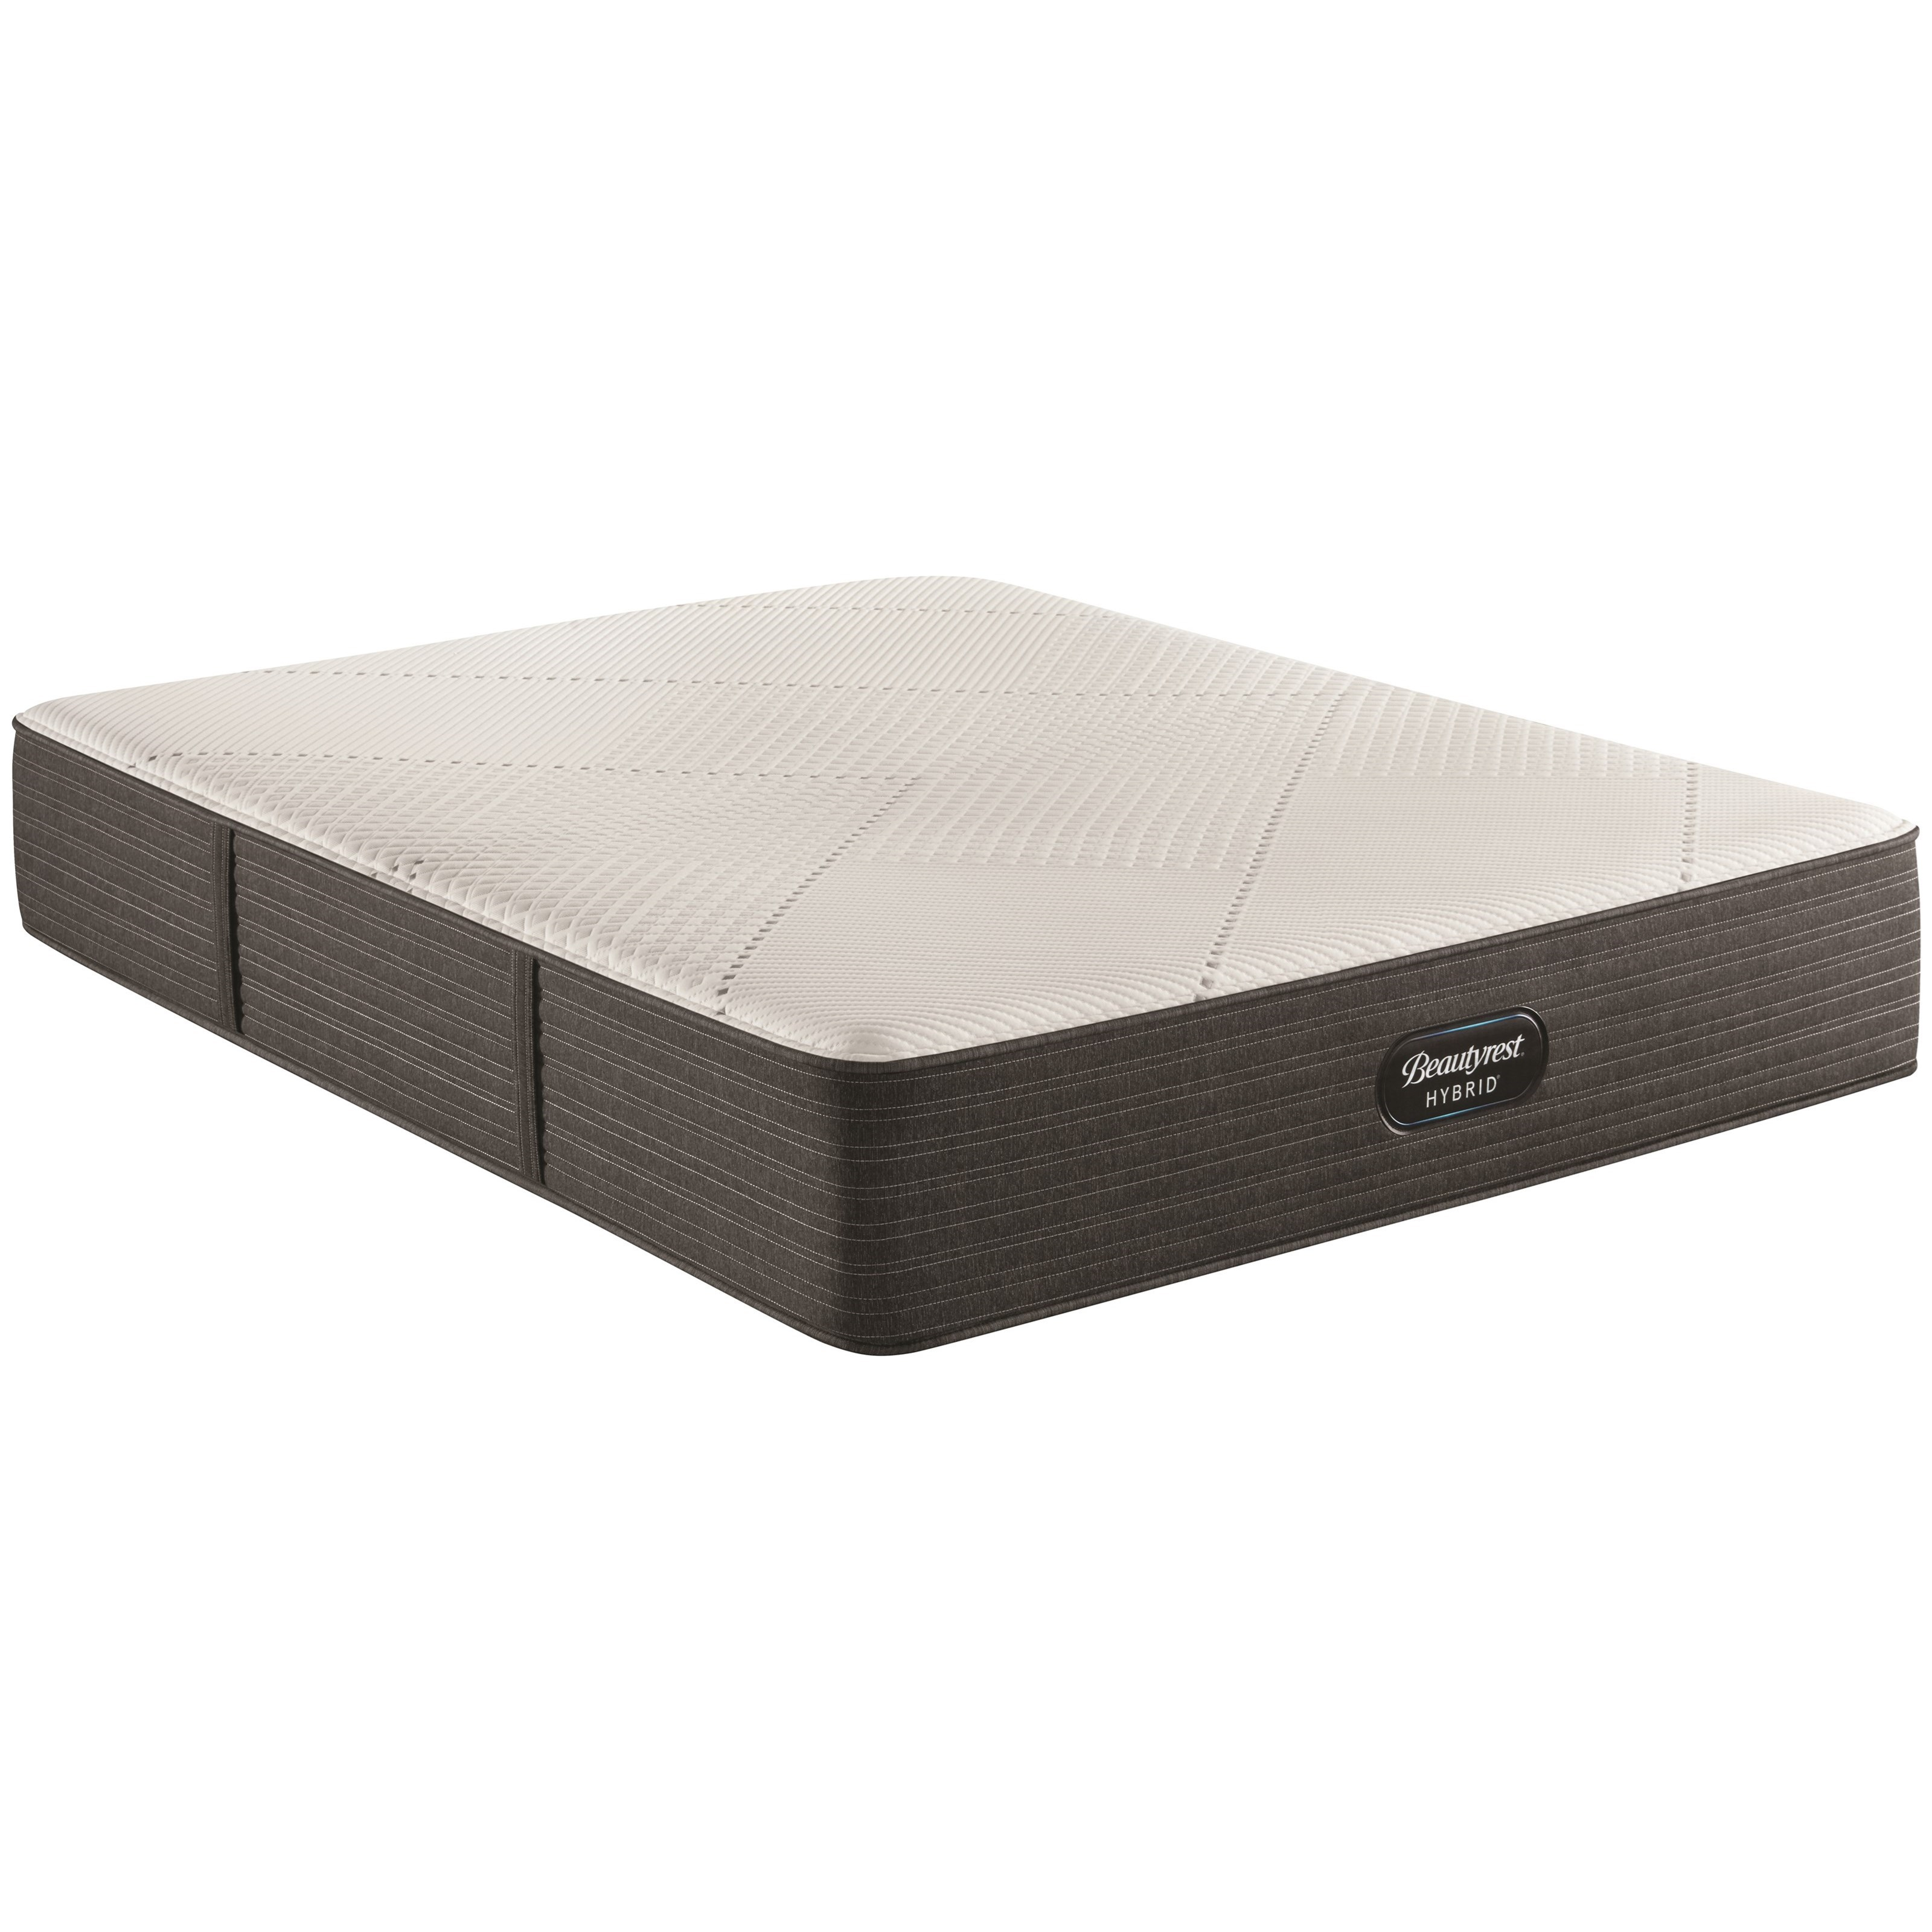 "BRX1000-IP Medium Full 13 1/2"" Hybrid Mattress by Beautyrest at Houston's Yuma Furniture"